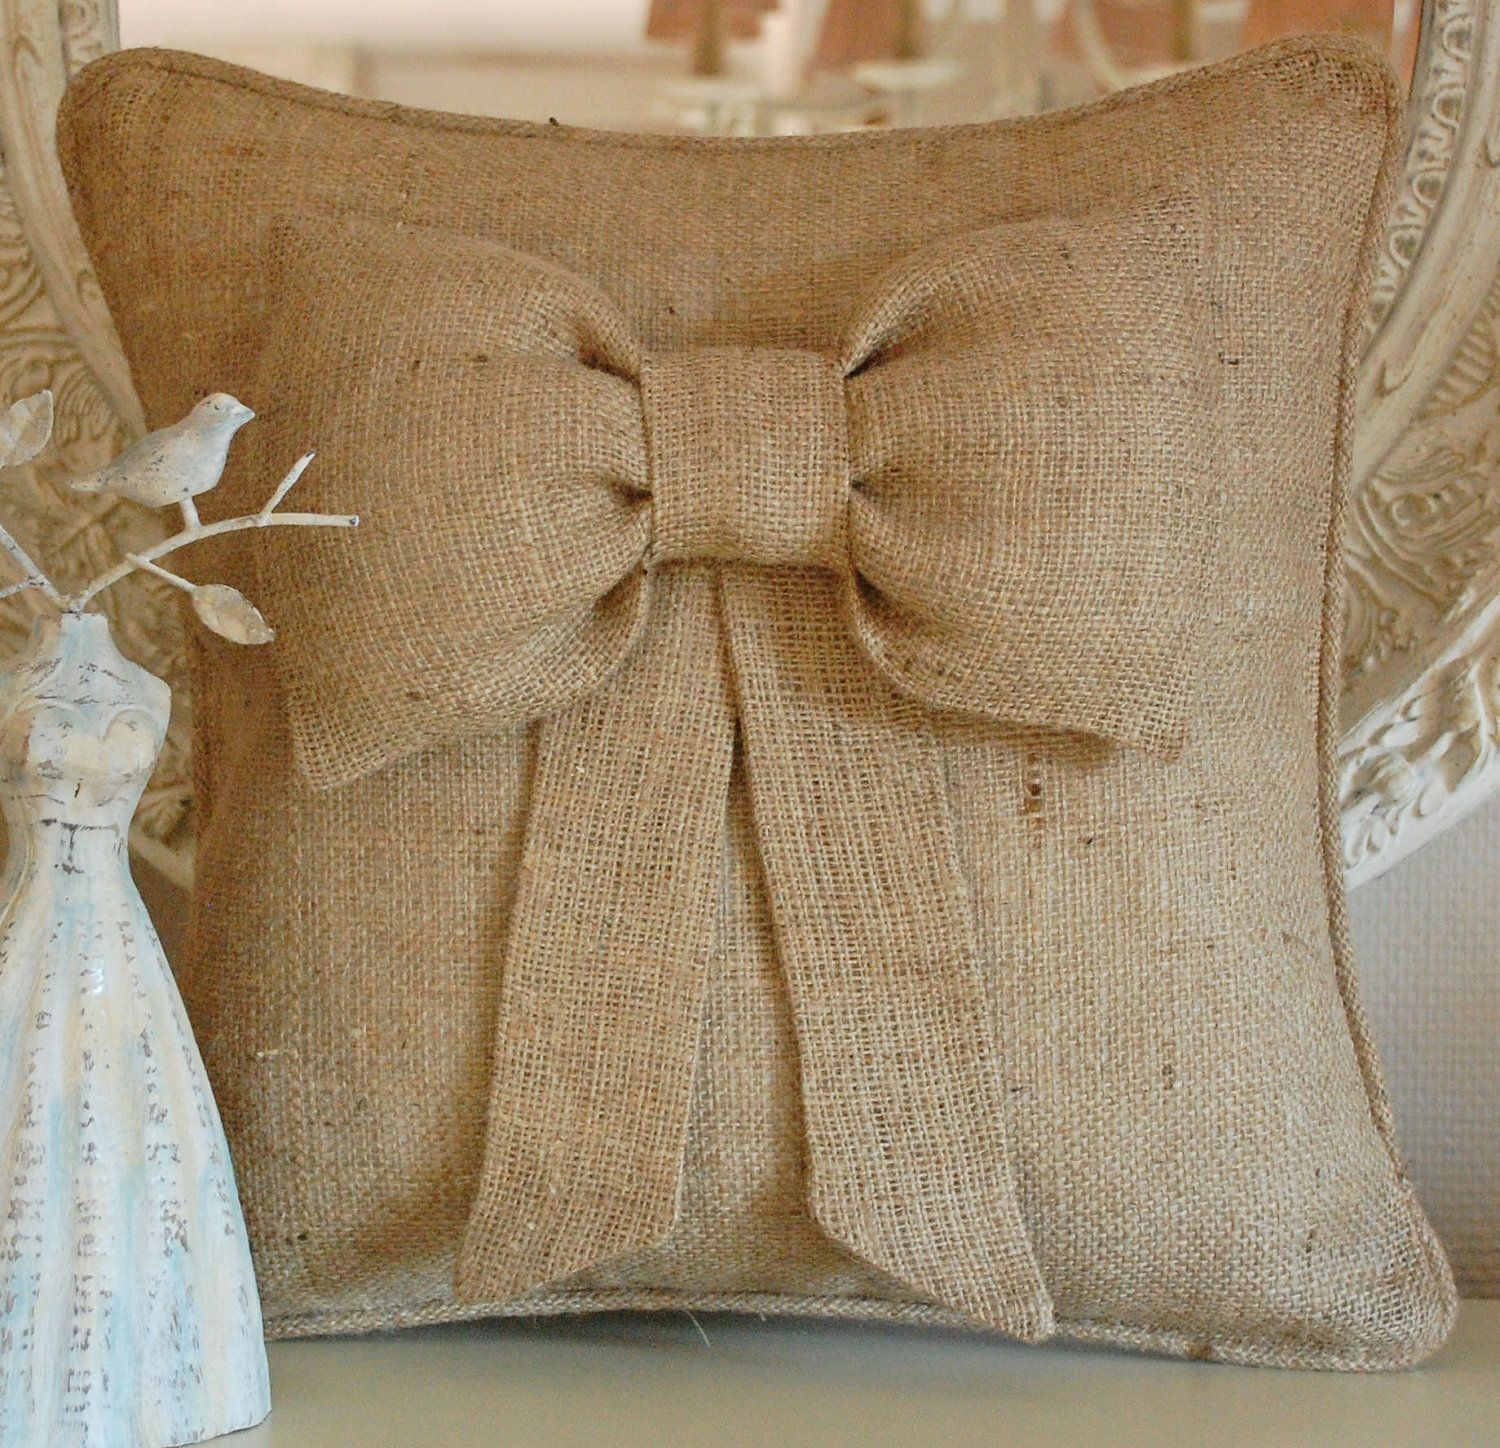 Puffy bow burlap pillow cover. $32.00, via Etsy.